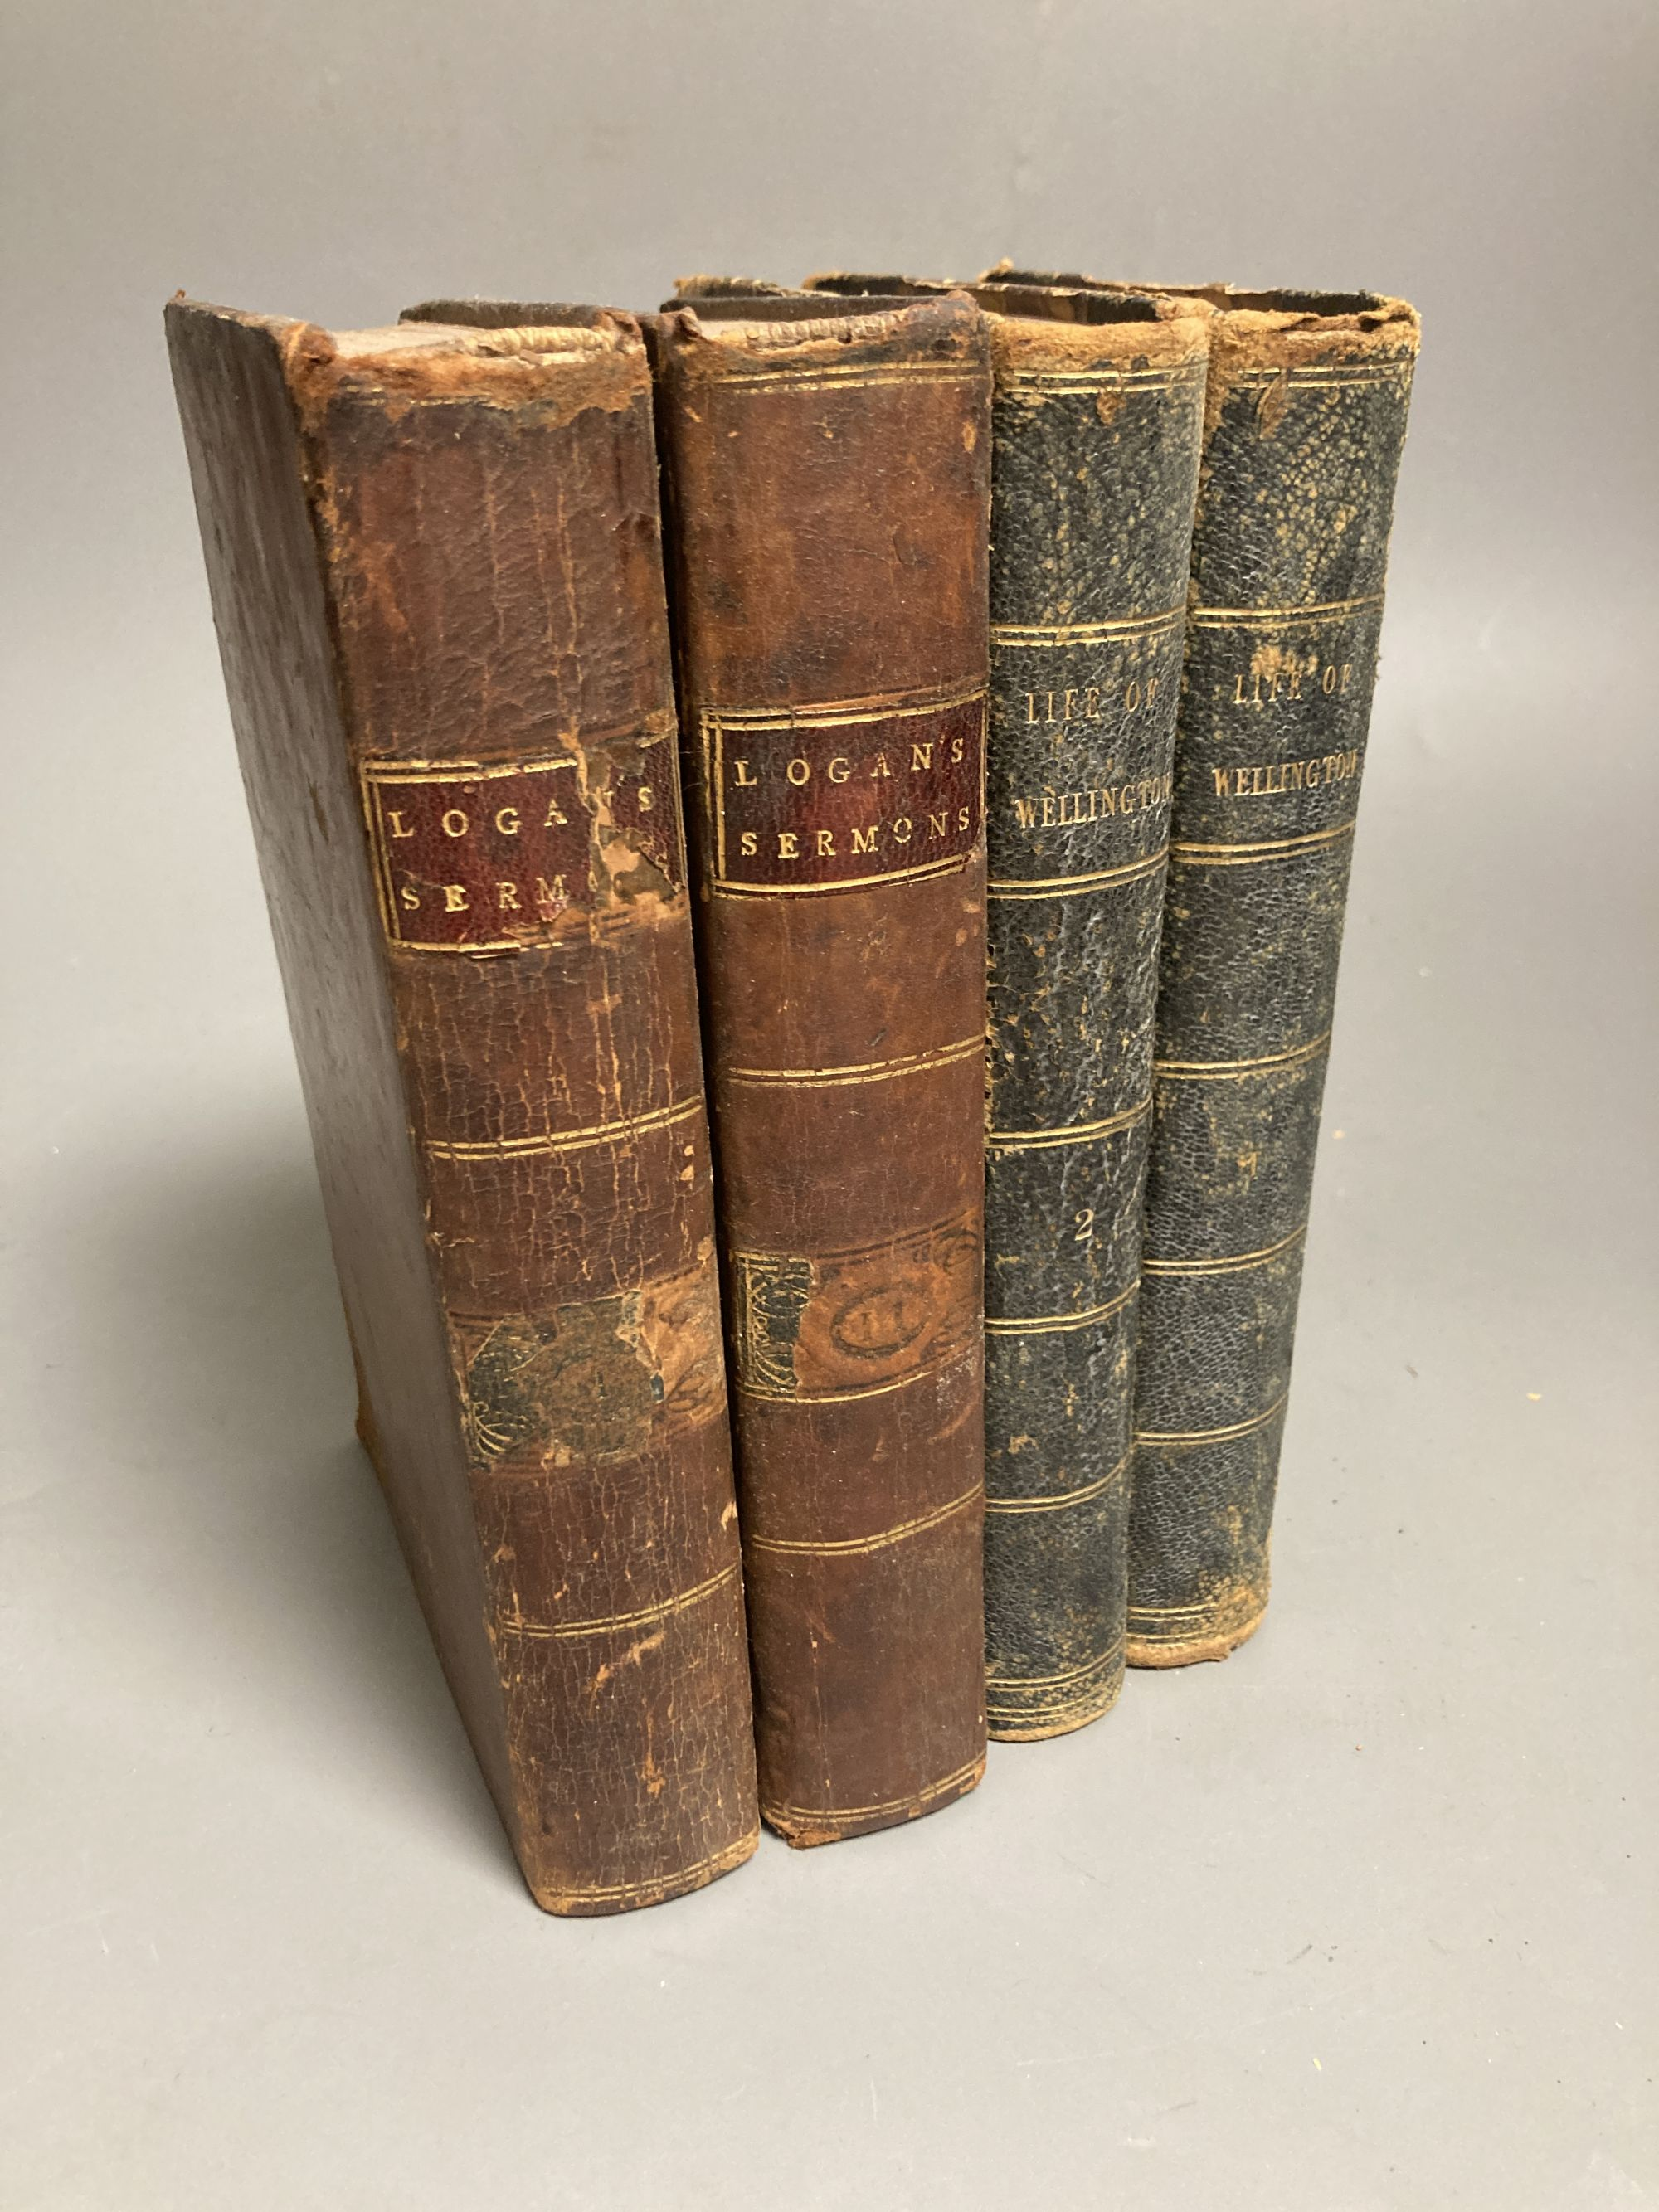 Two volumes of Life of Wellington and other volumes